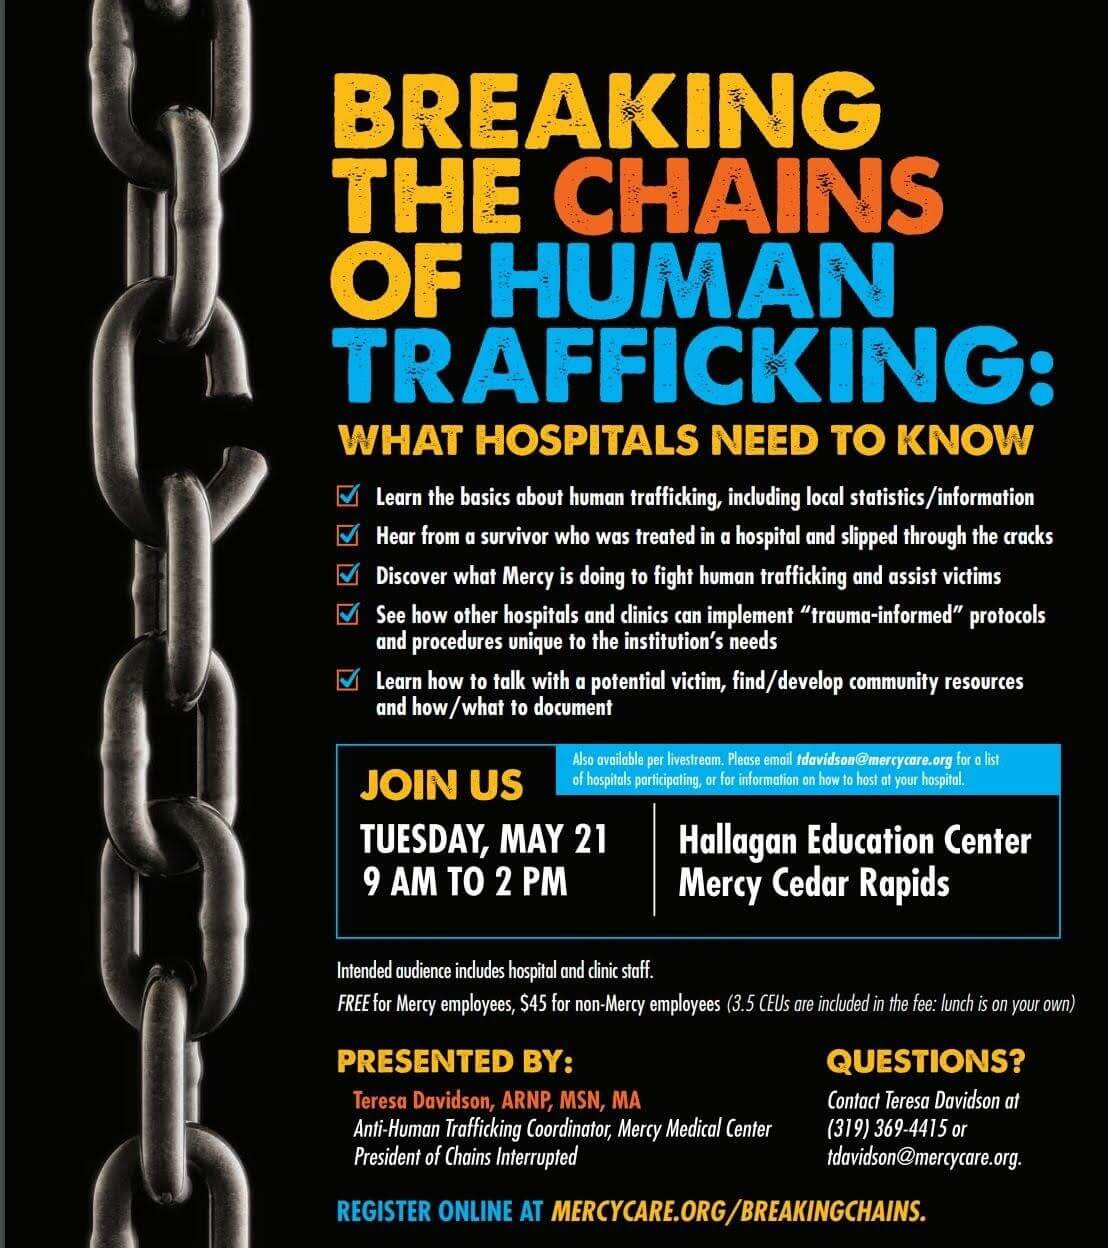 human-trafficking-what-hospitals-need-to-know